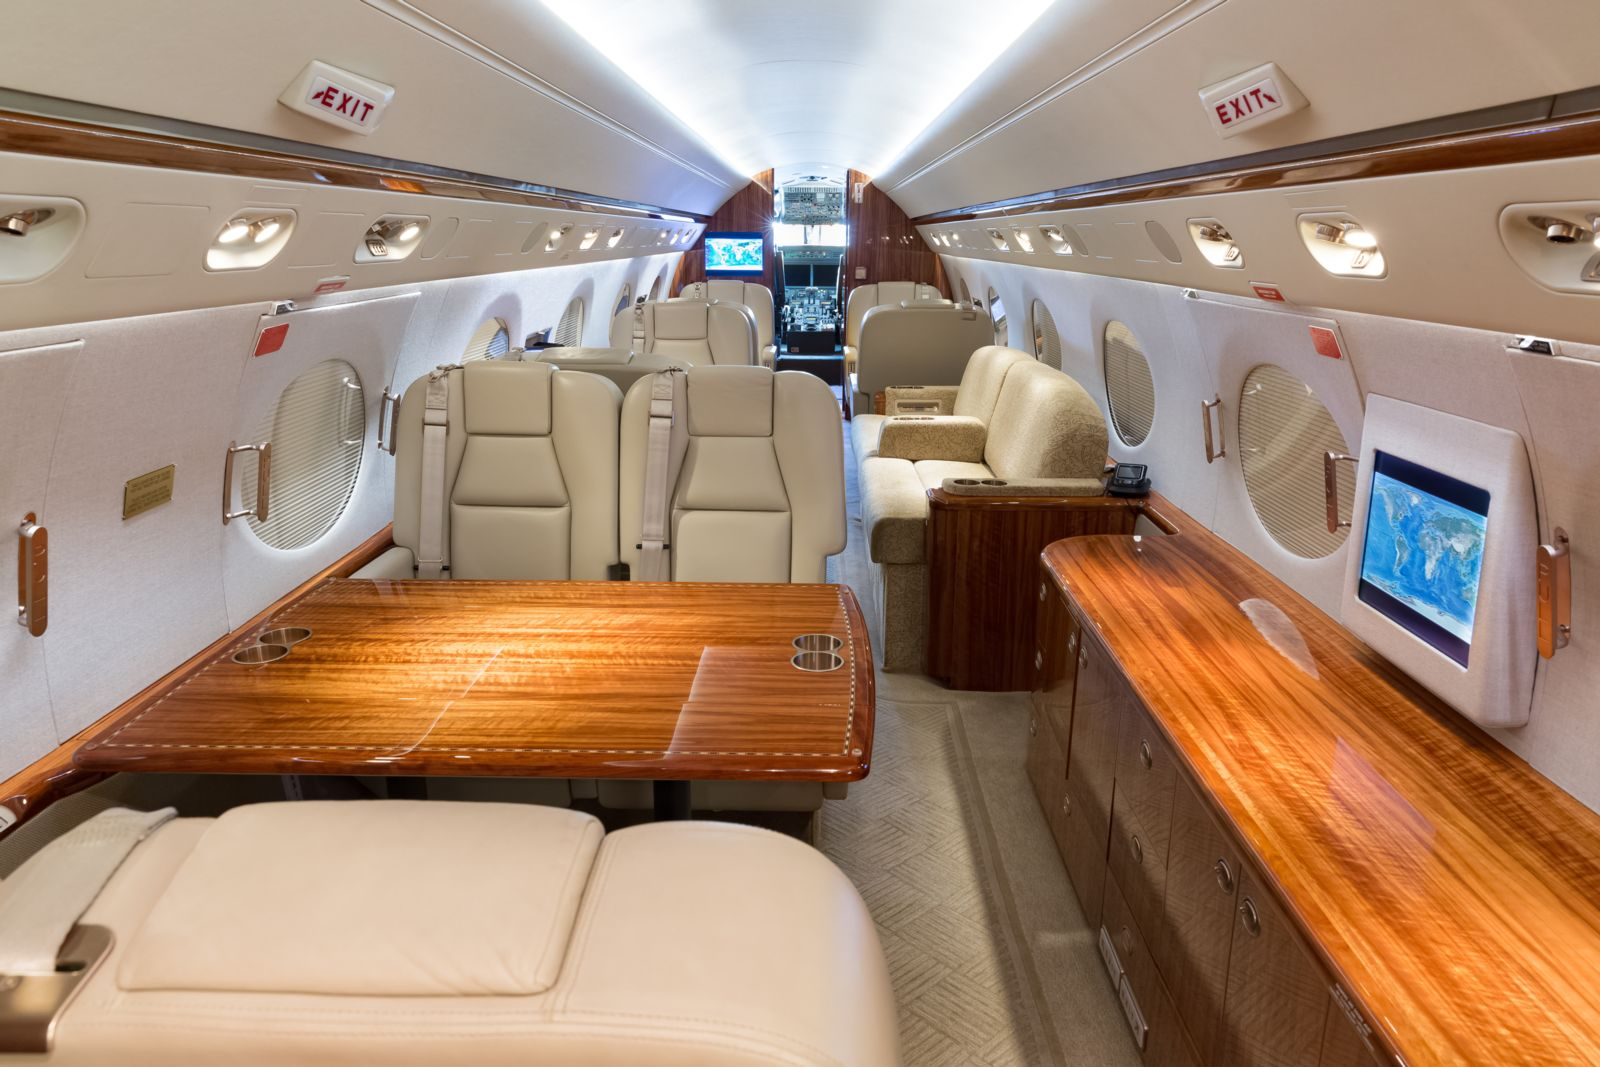 Gulfstream G450  S/N 4127 for sale | gallery image: /userfiles/images/G450_4127/aft%20fwd.jpg